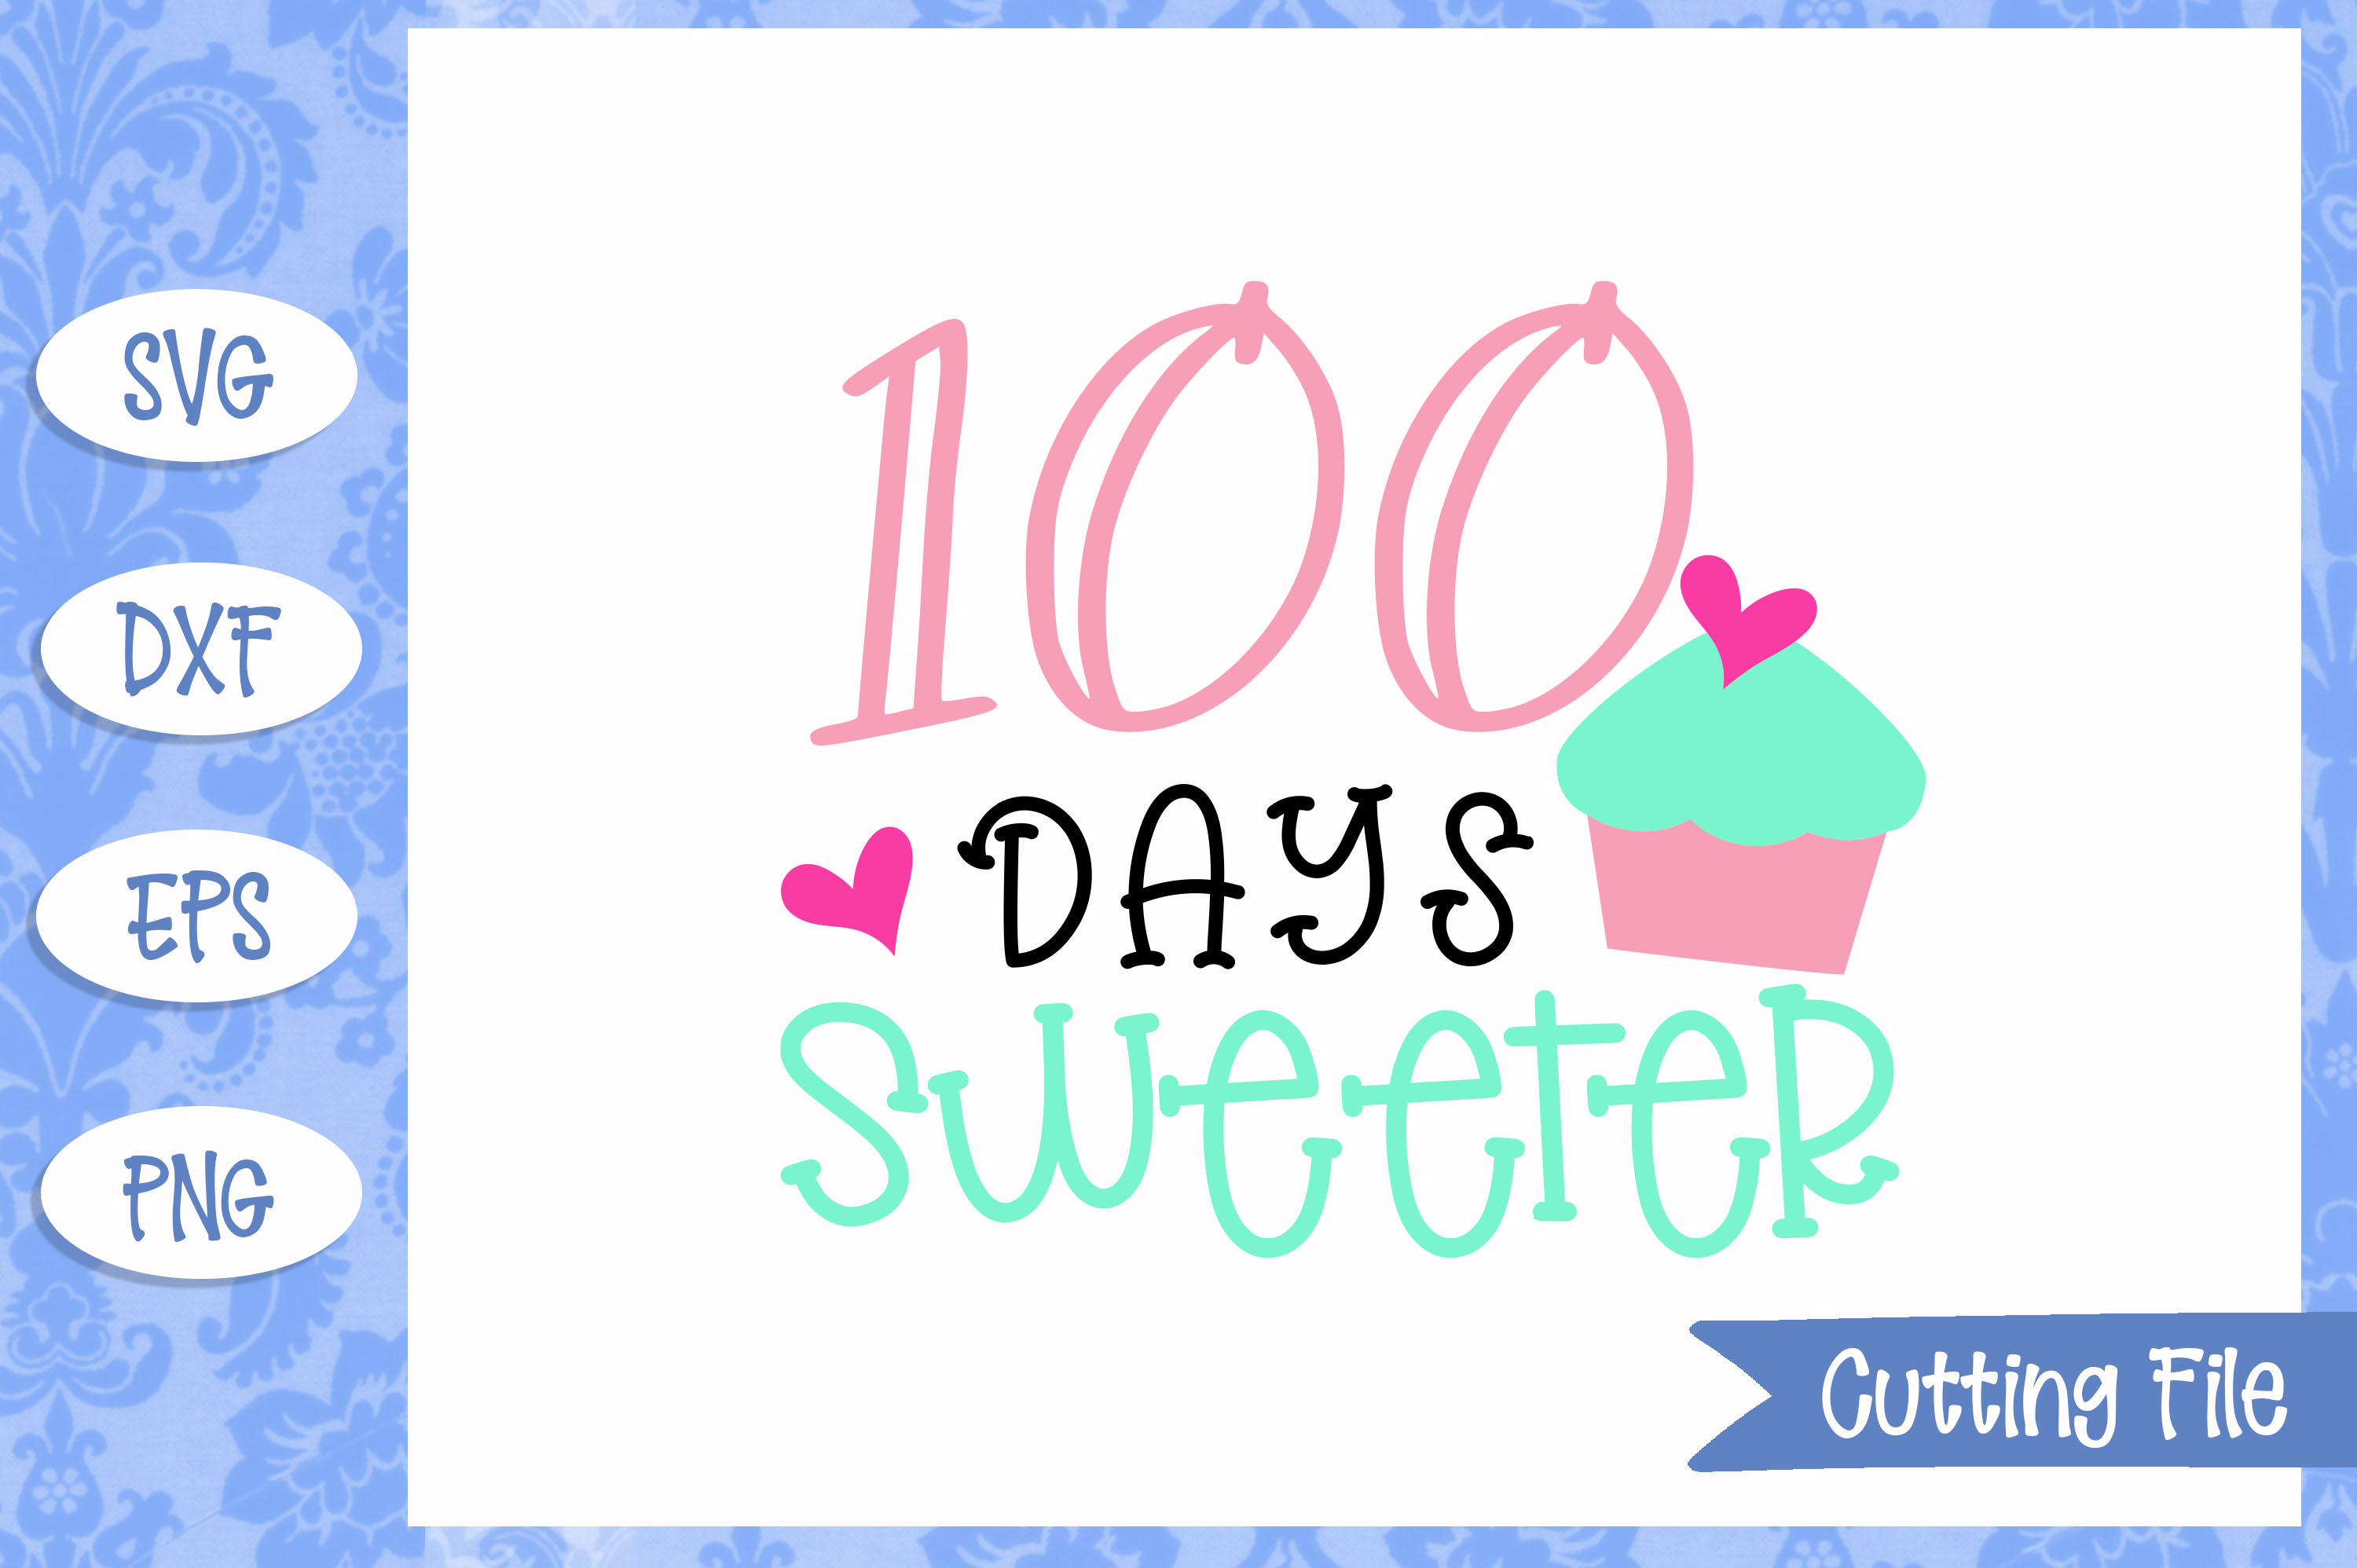 100 days sweeter SVG File example image 1